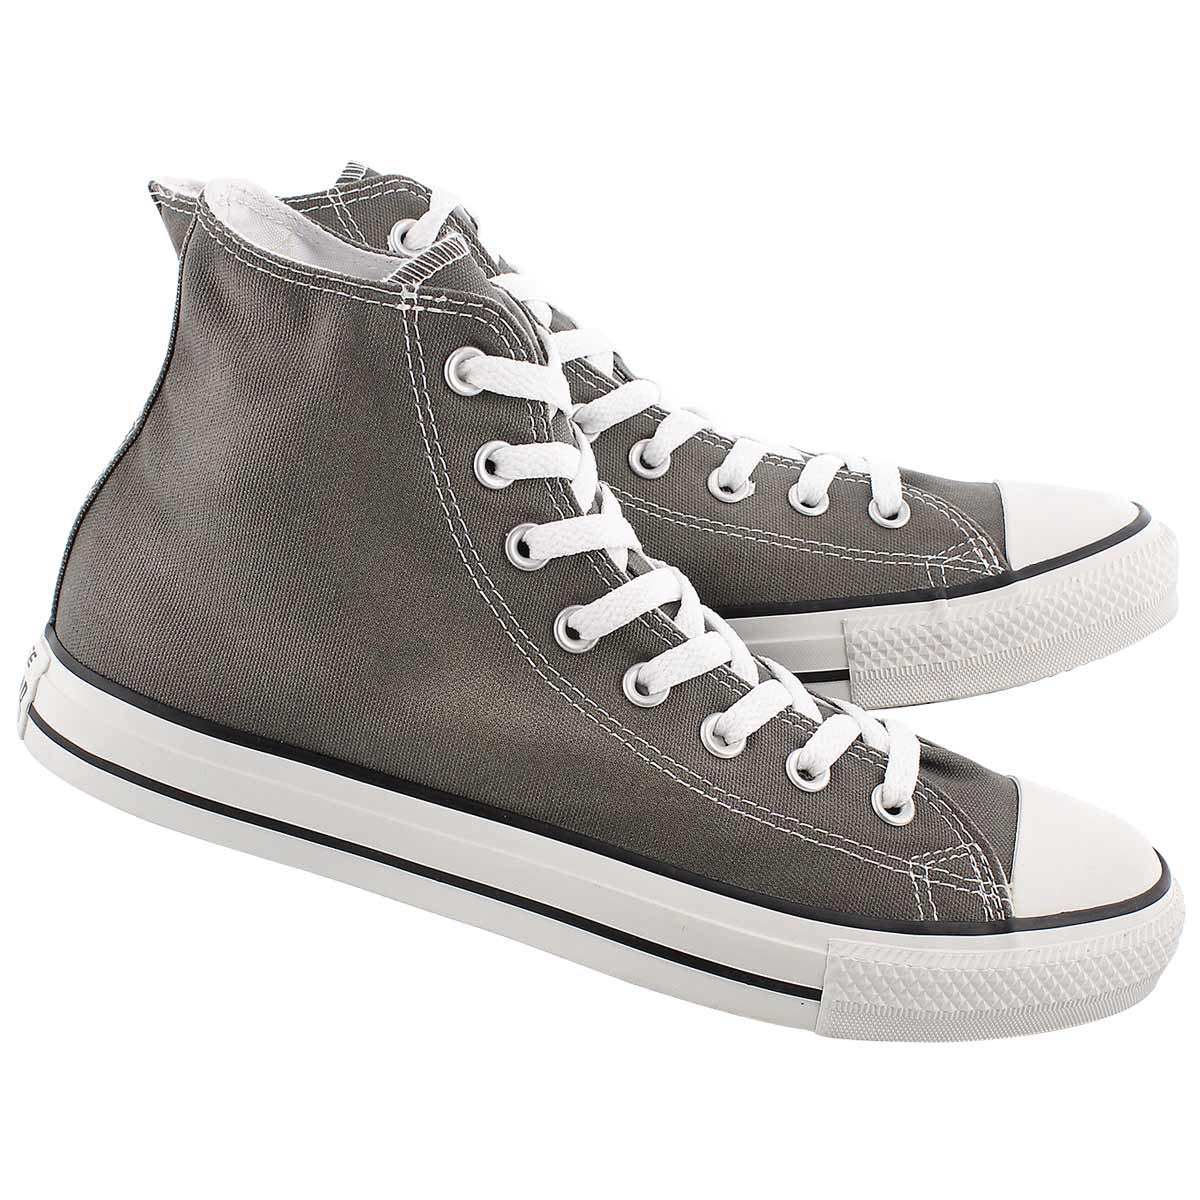 Mns CT All Star Core Hi charc high top